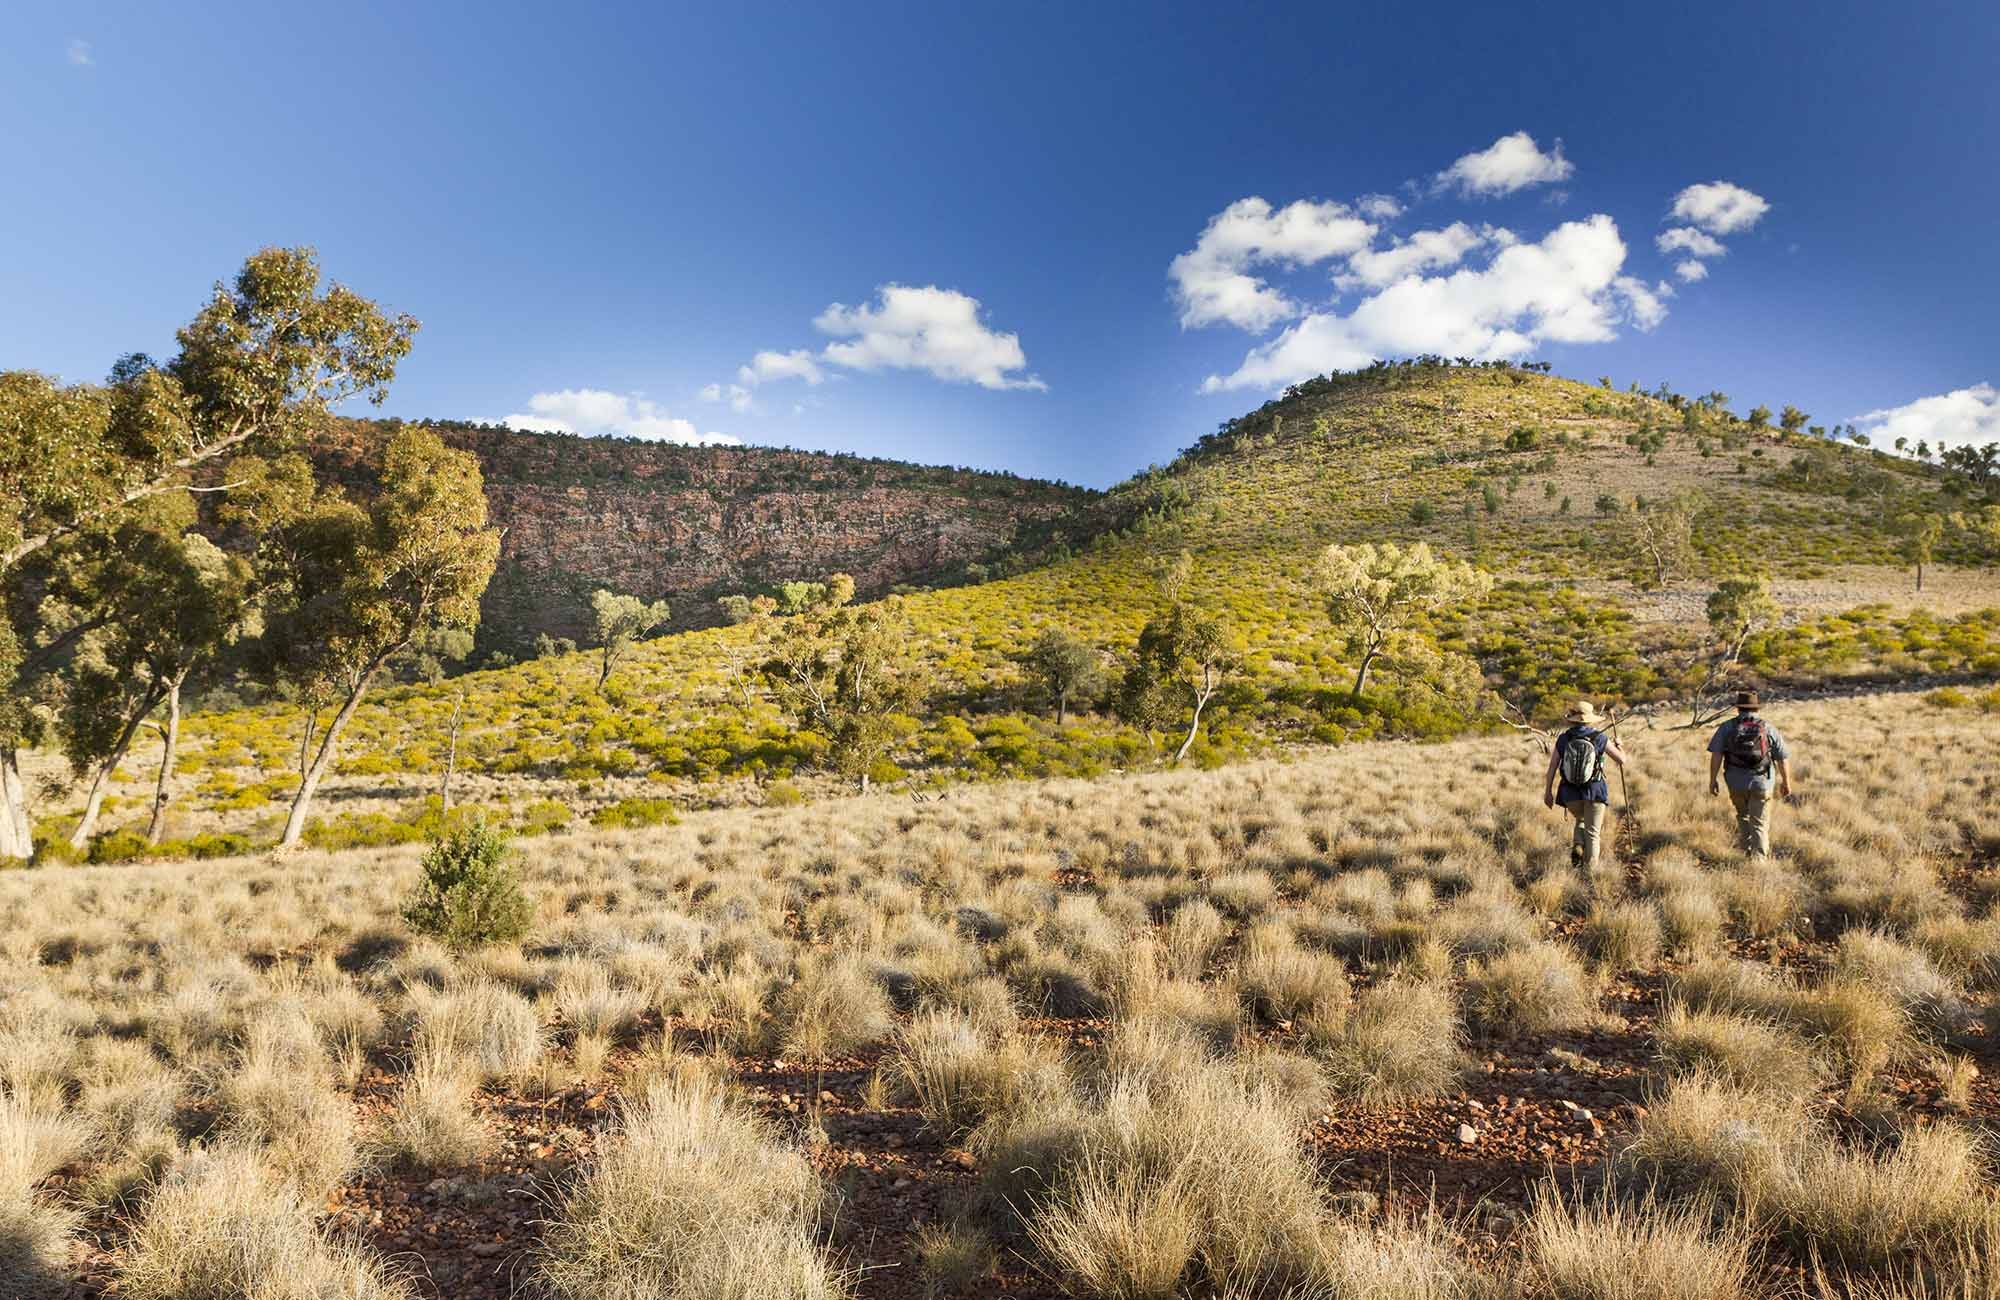 Little Mountain walking track, Gundabooka National Park. Photo: David Finnegan